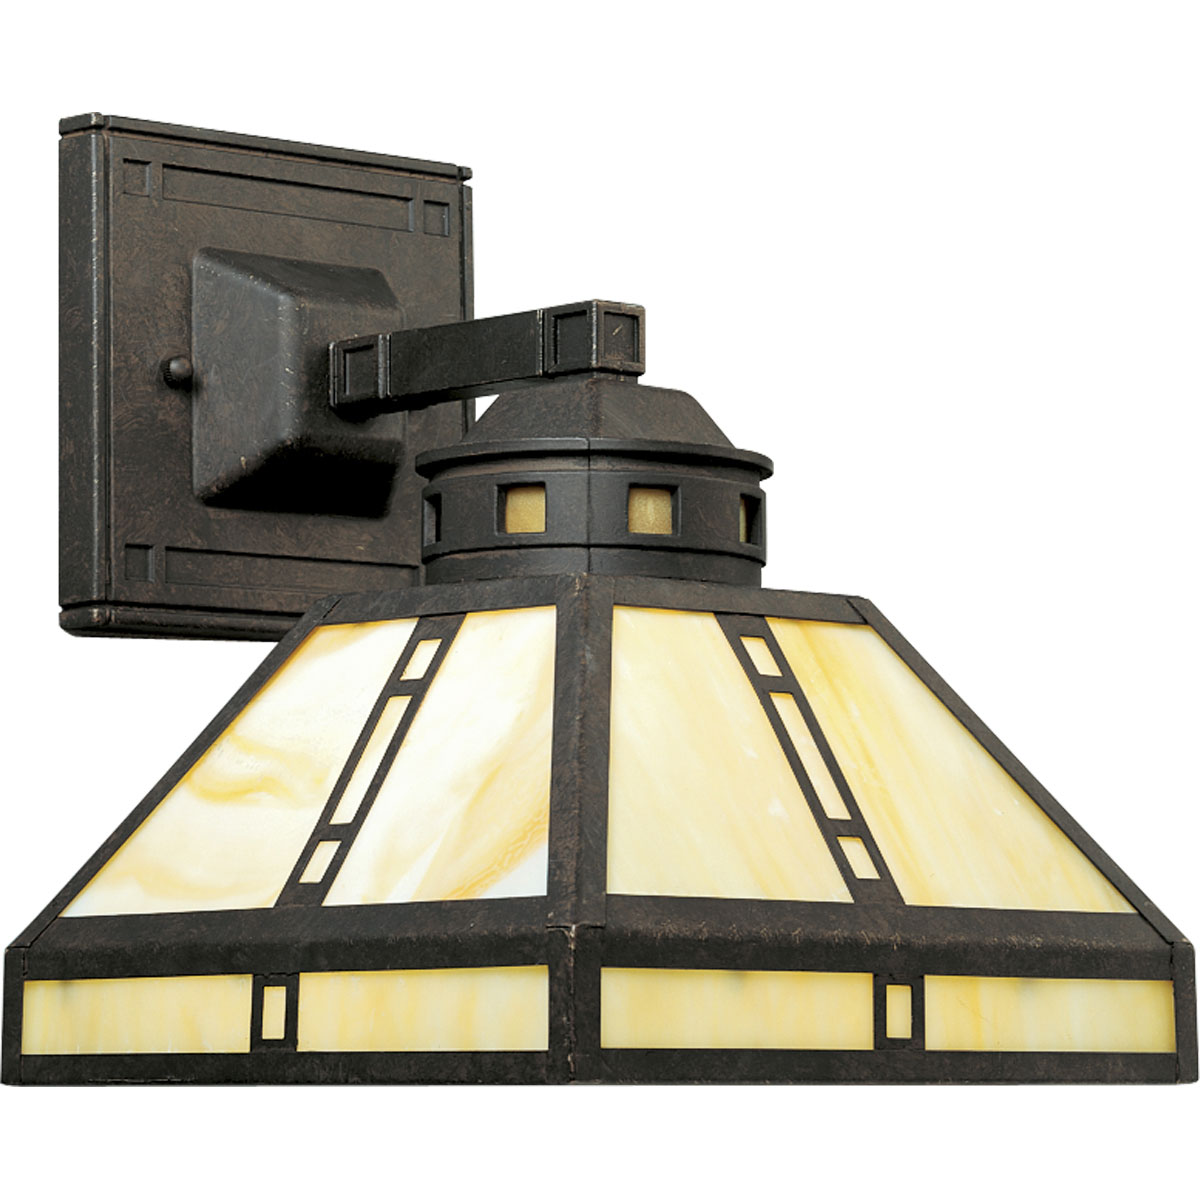 Progress Lighting (P2900-46) Arts and Crafts 1 Light Wall Bracket in Weathered Bronze